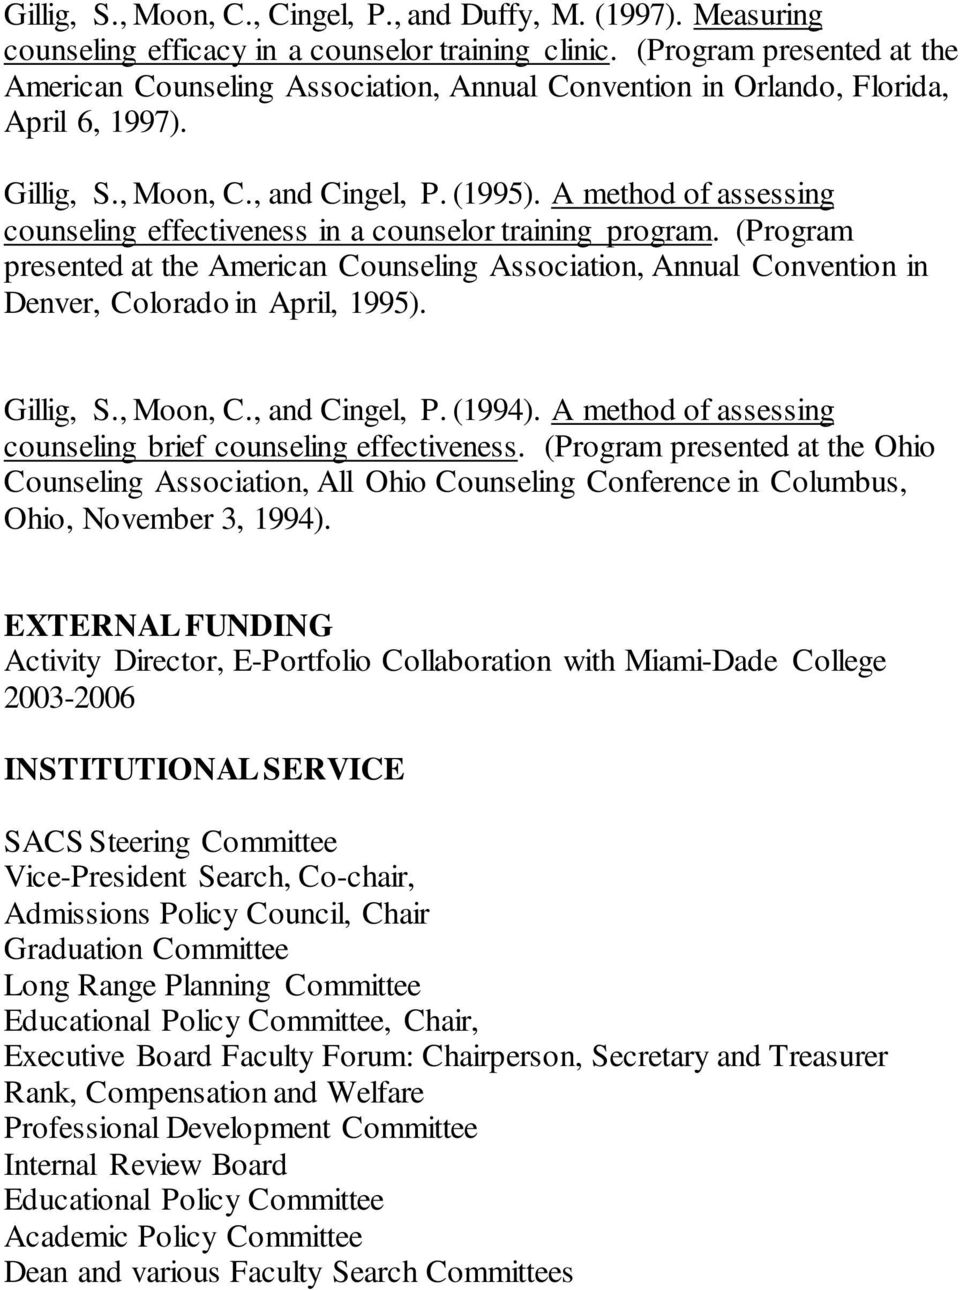 A method of assessing counseling effectiveness in a counselor training program. (Program presented at the American Counseling Association, Annual Convention in Denver, Colorado in April, 1995).